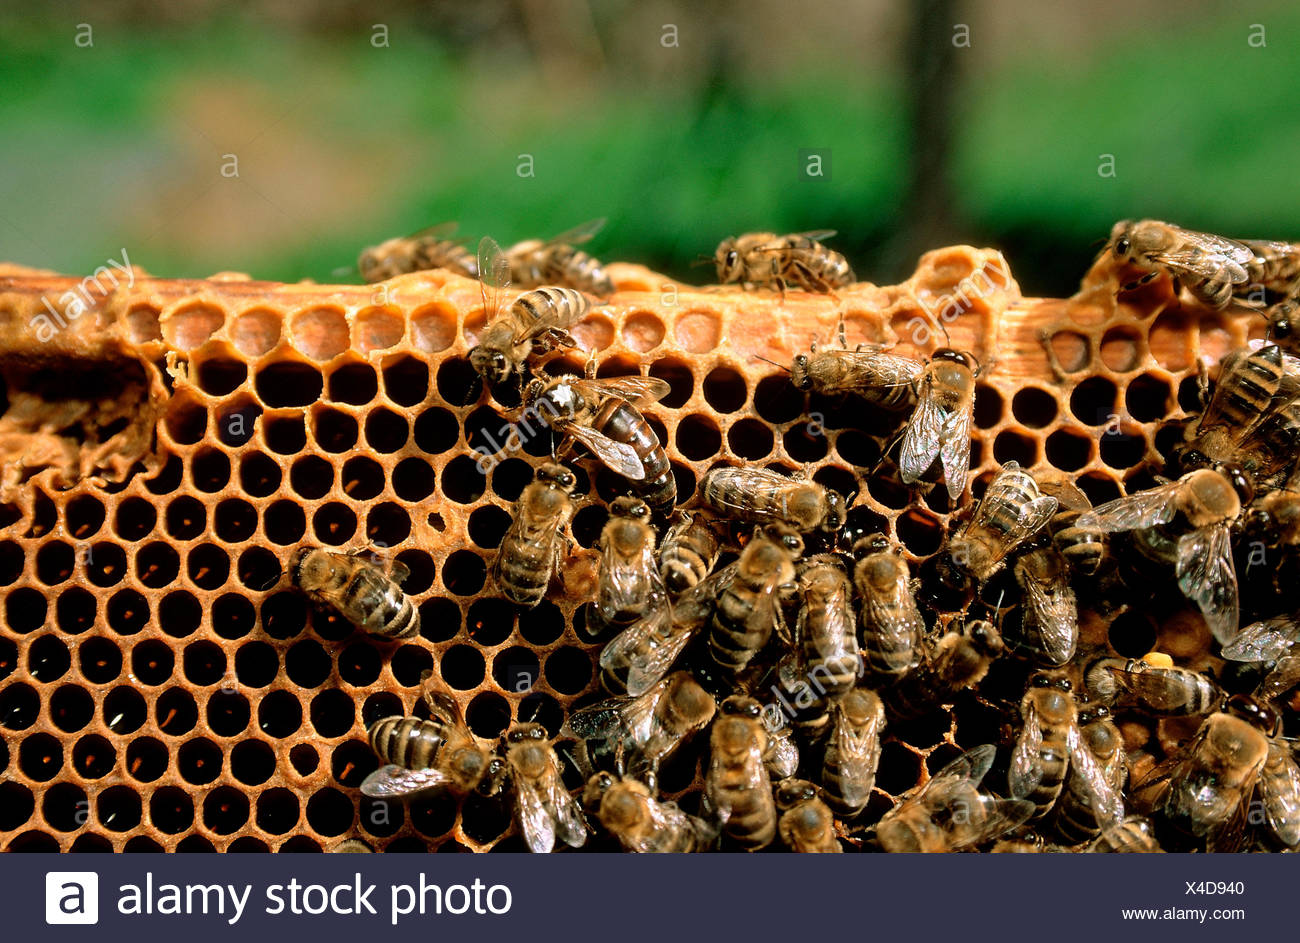 Bee's strain with queen (selected with white star) on a honeycomb - Stock Image